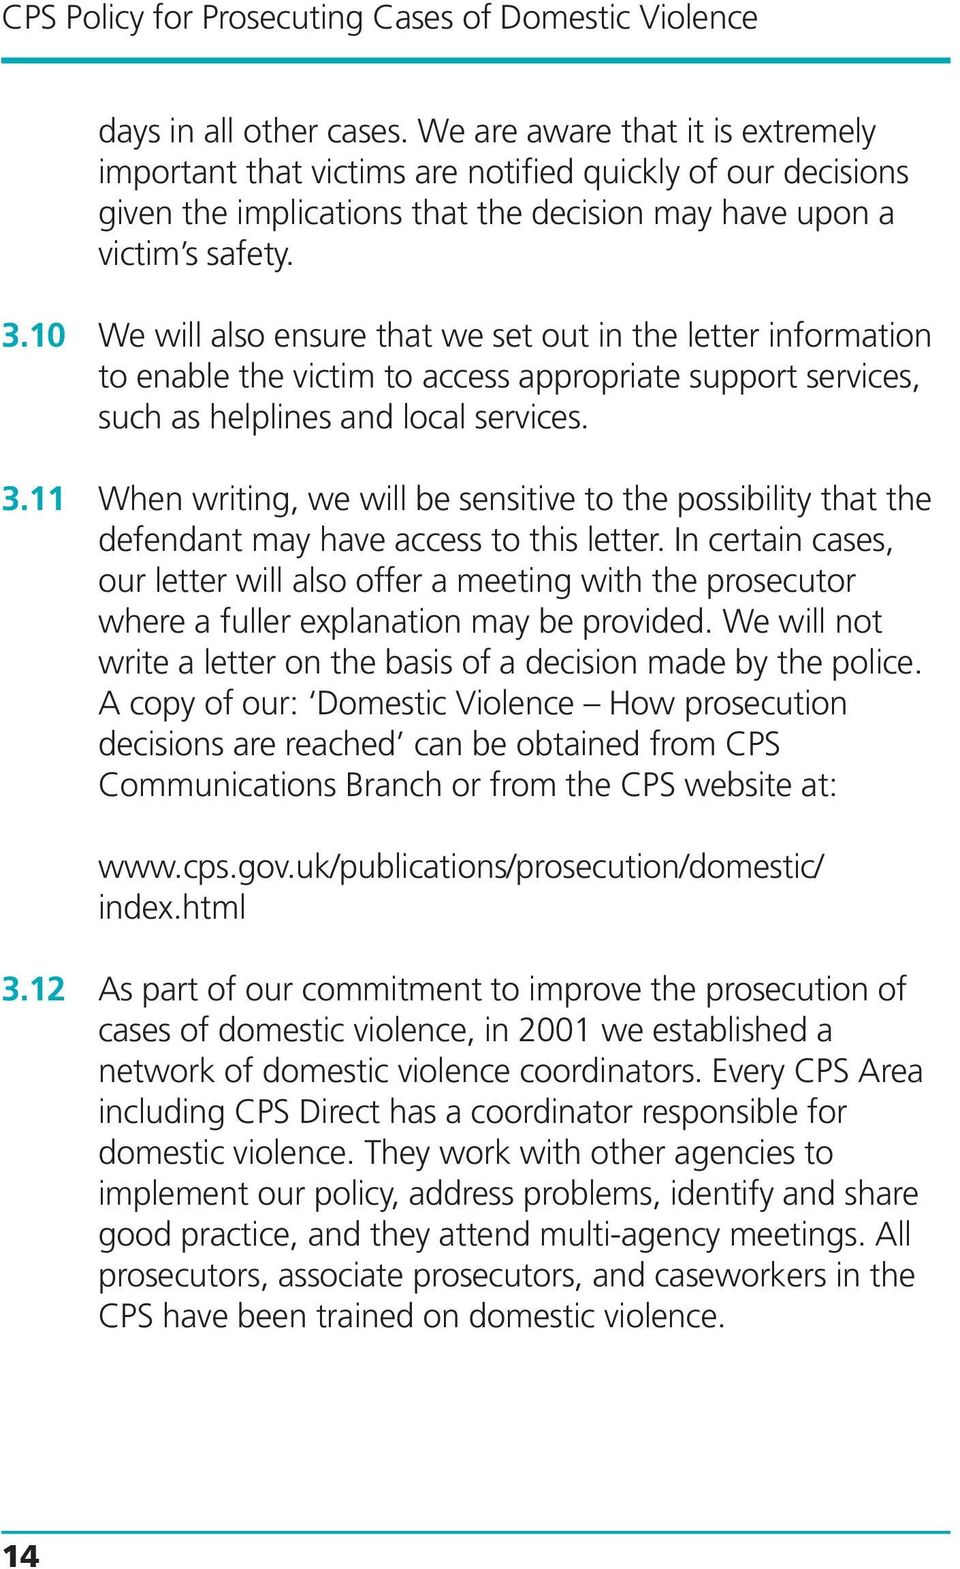 CPS Policy for Prosecuting Cases of Domestic Violence - PDF